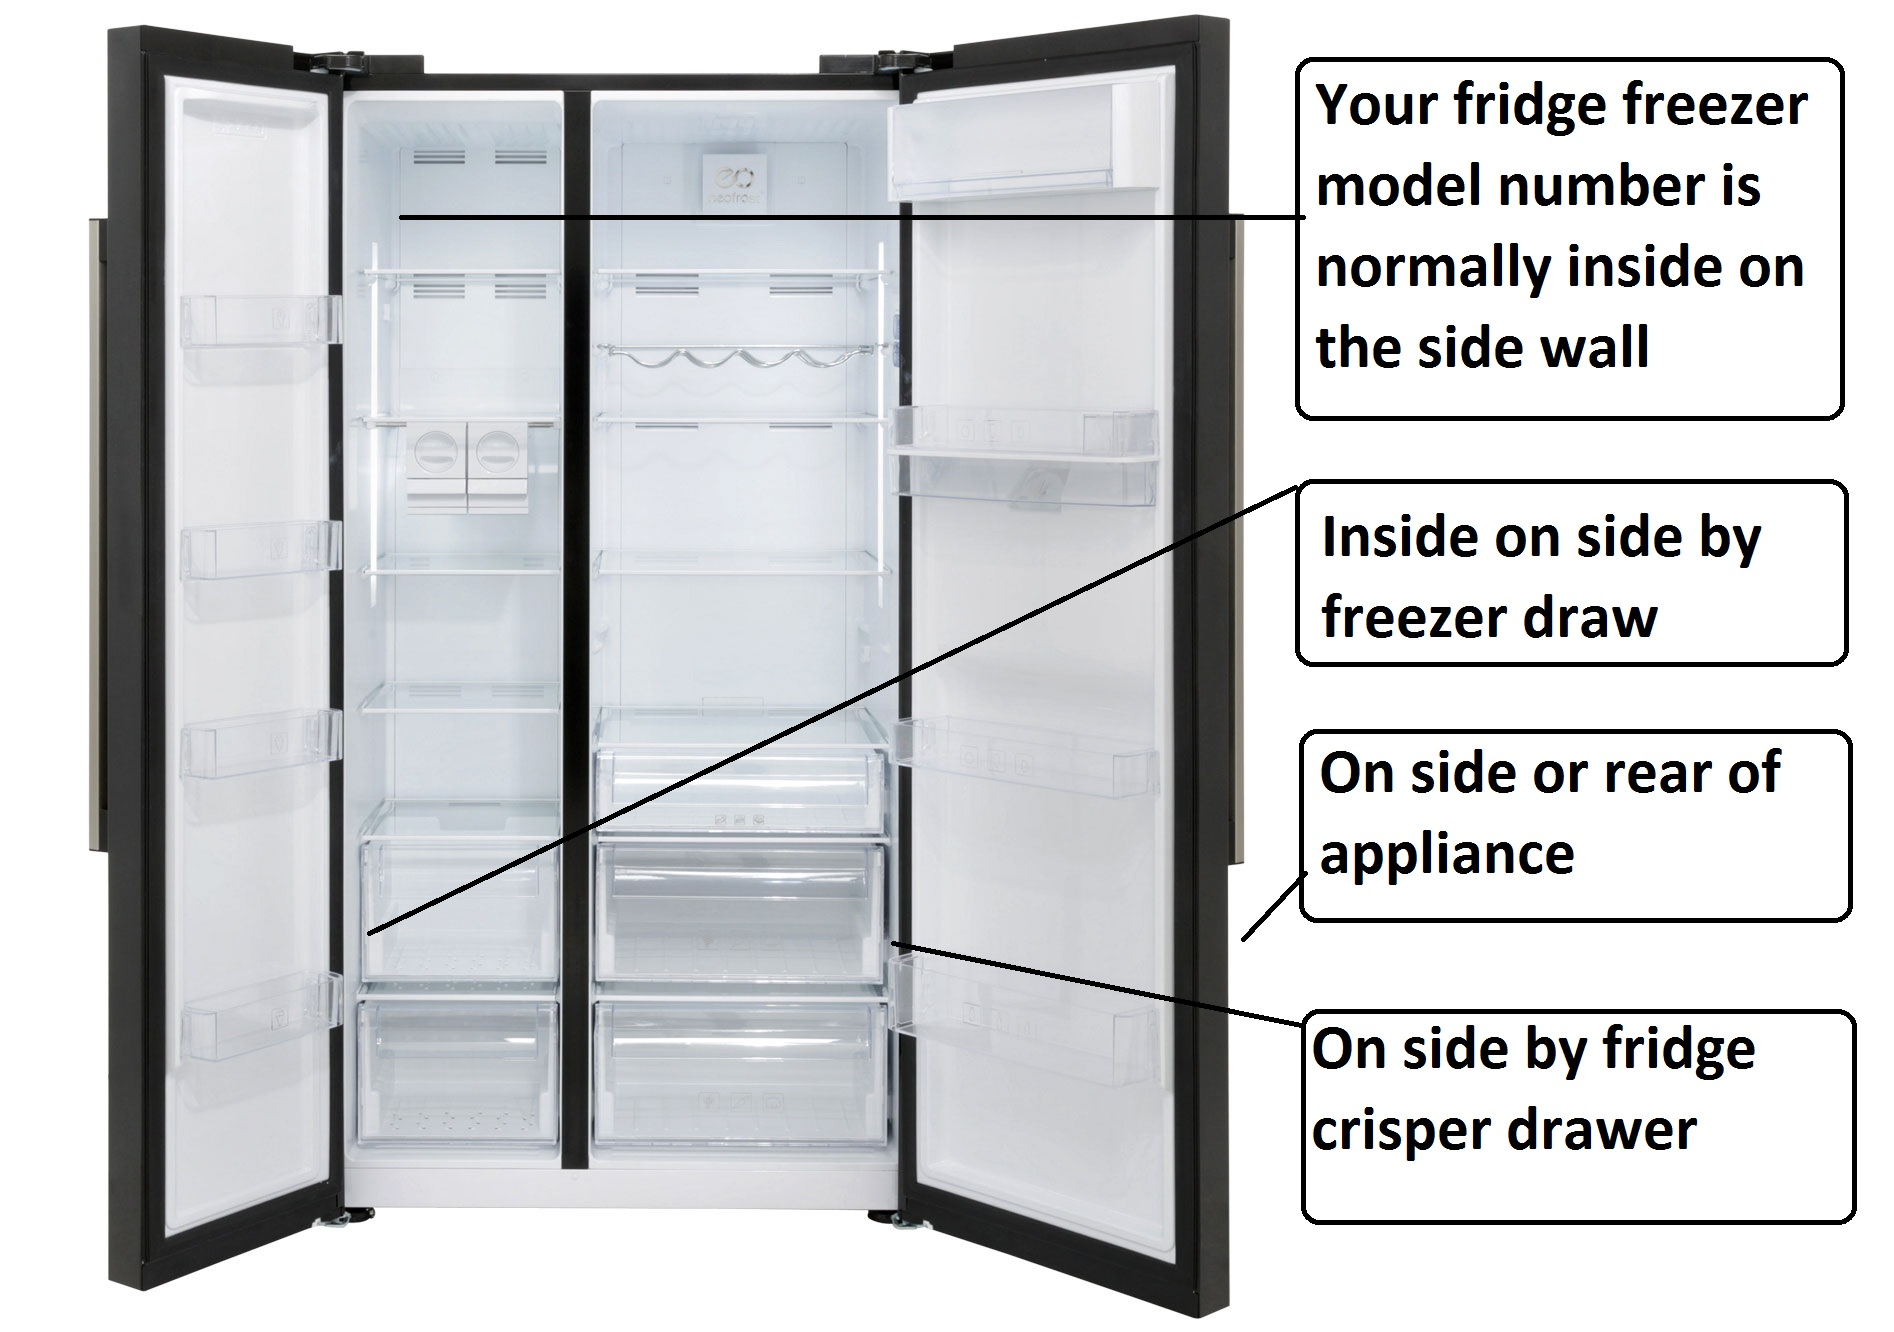 How To Find Your Fridge Freezer Model Number